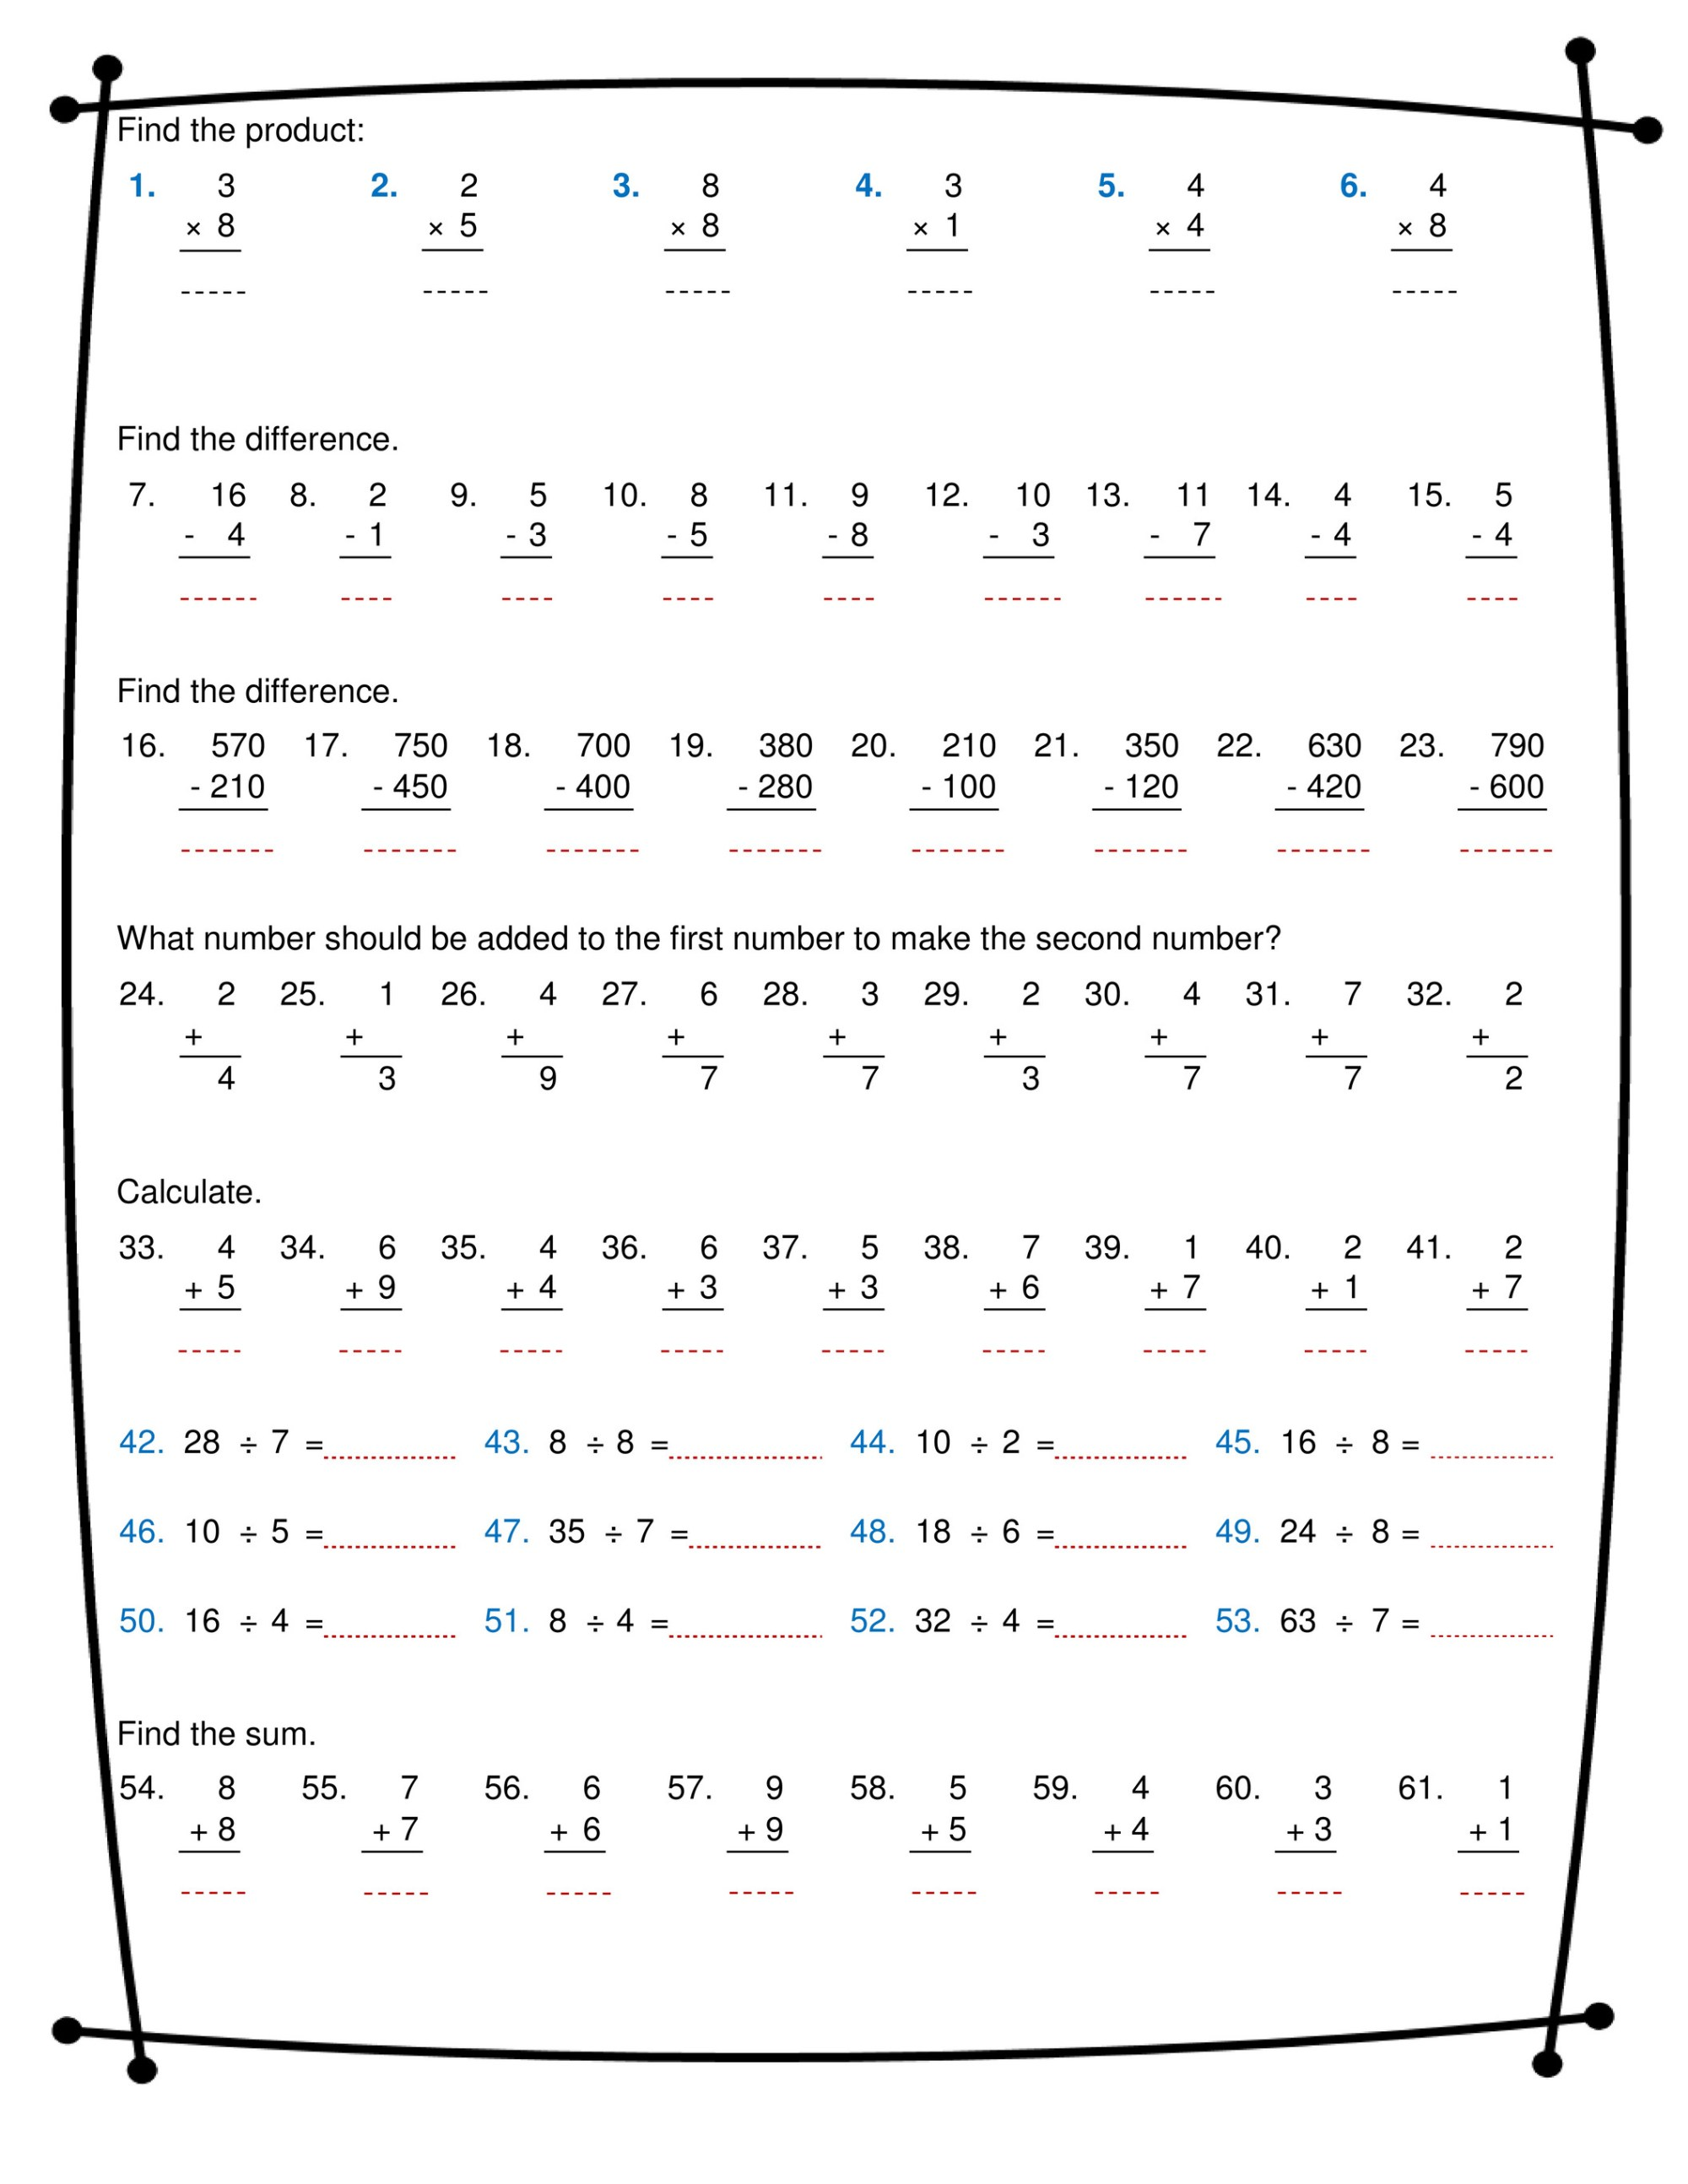 hight resolution of ninalazina - addition subtraction multiplication division worksheets pdf  Upload V2 - Page 1 - Created with Publitas.com